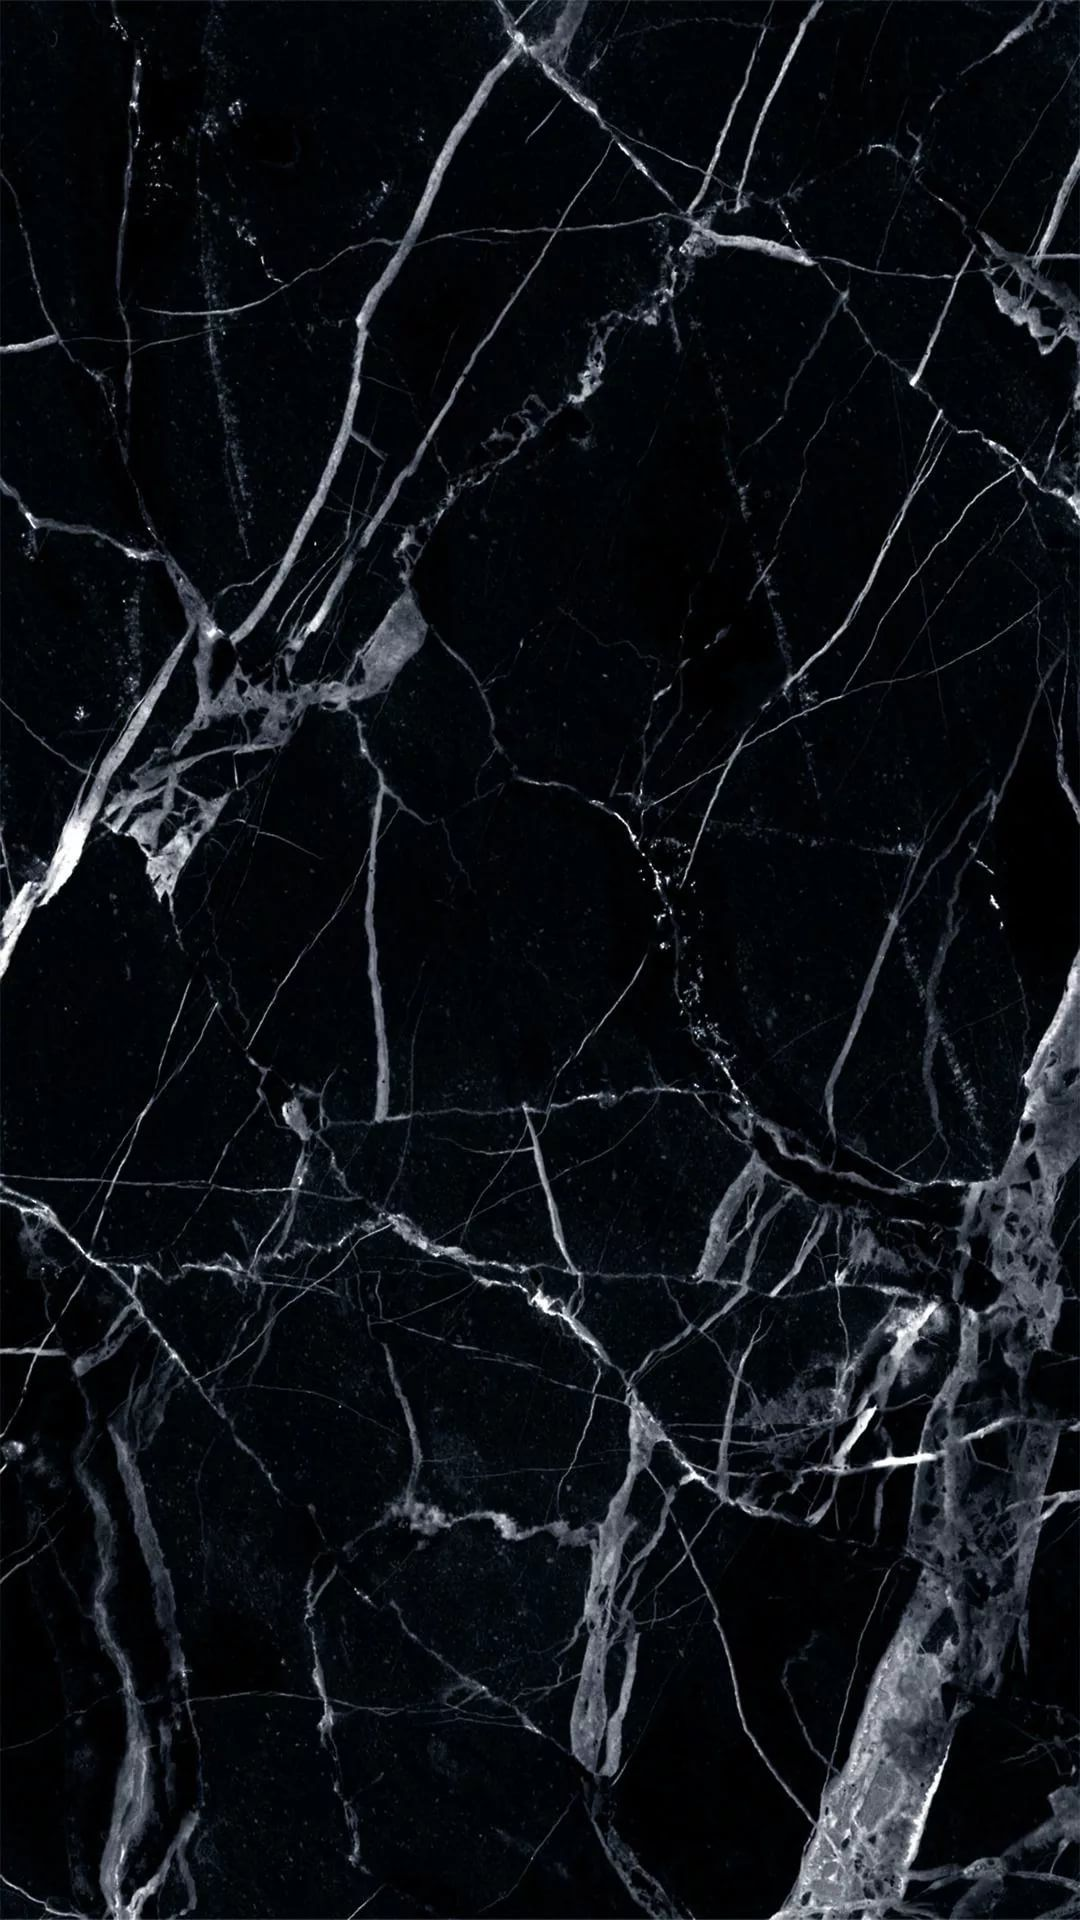 Marble iPhone hd wallpaper